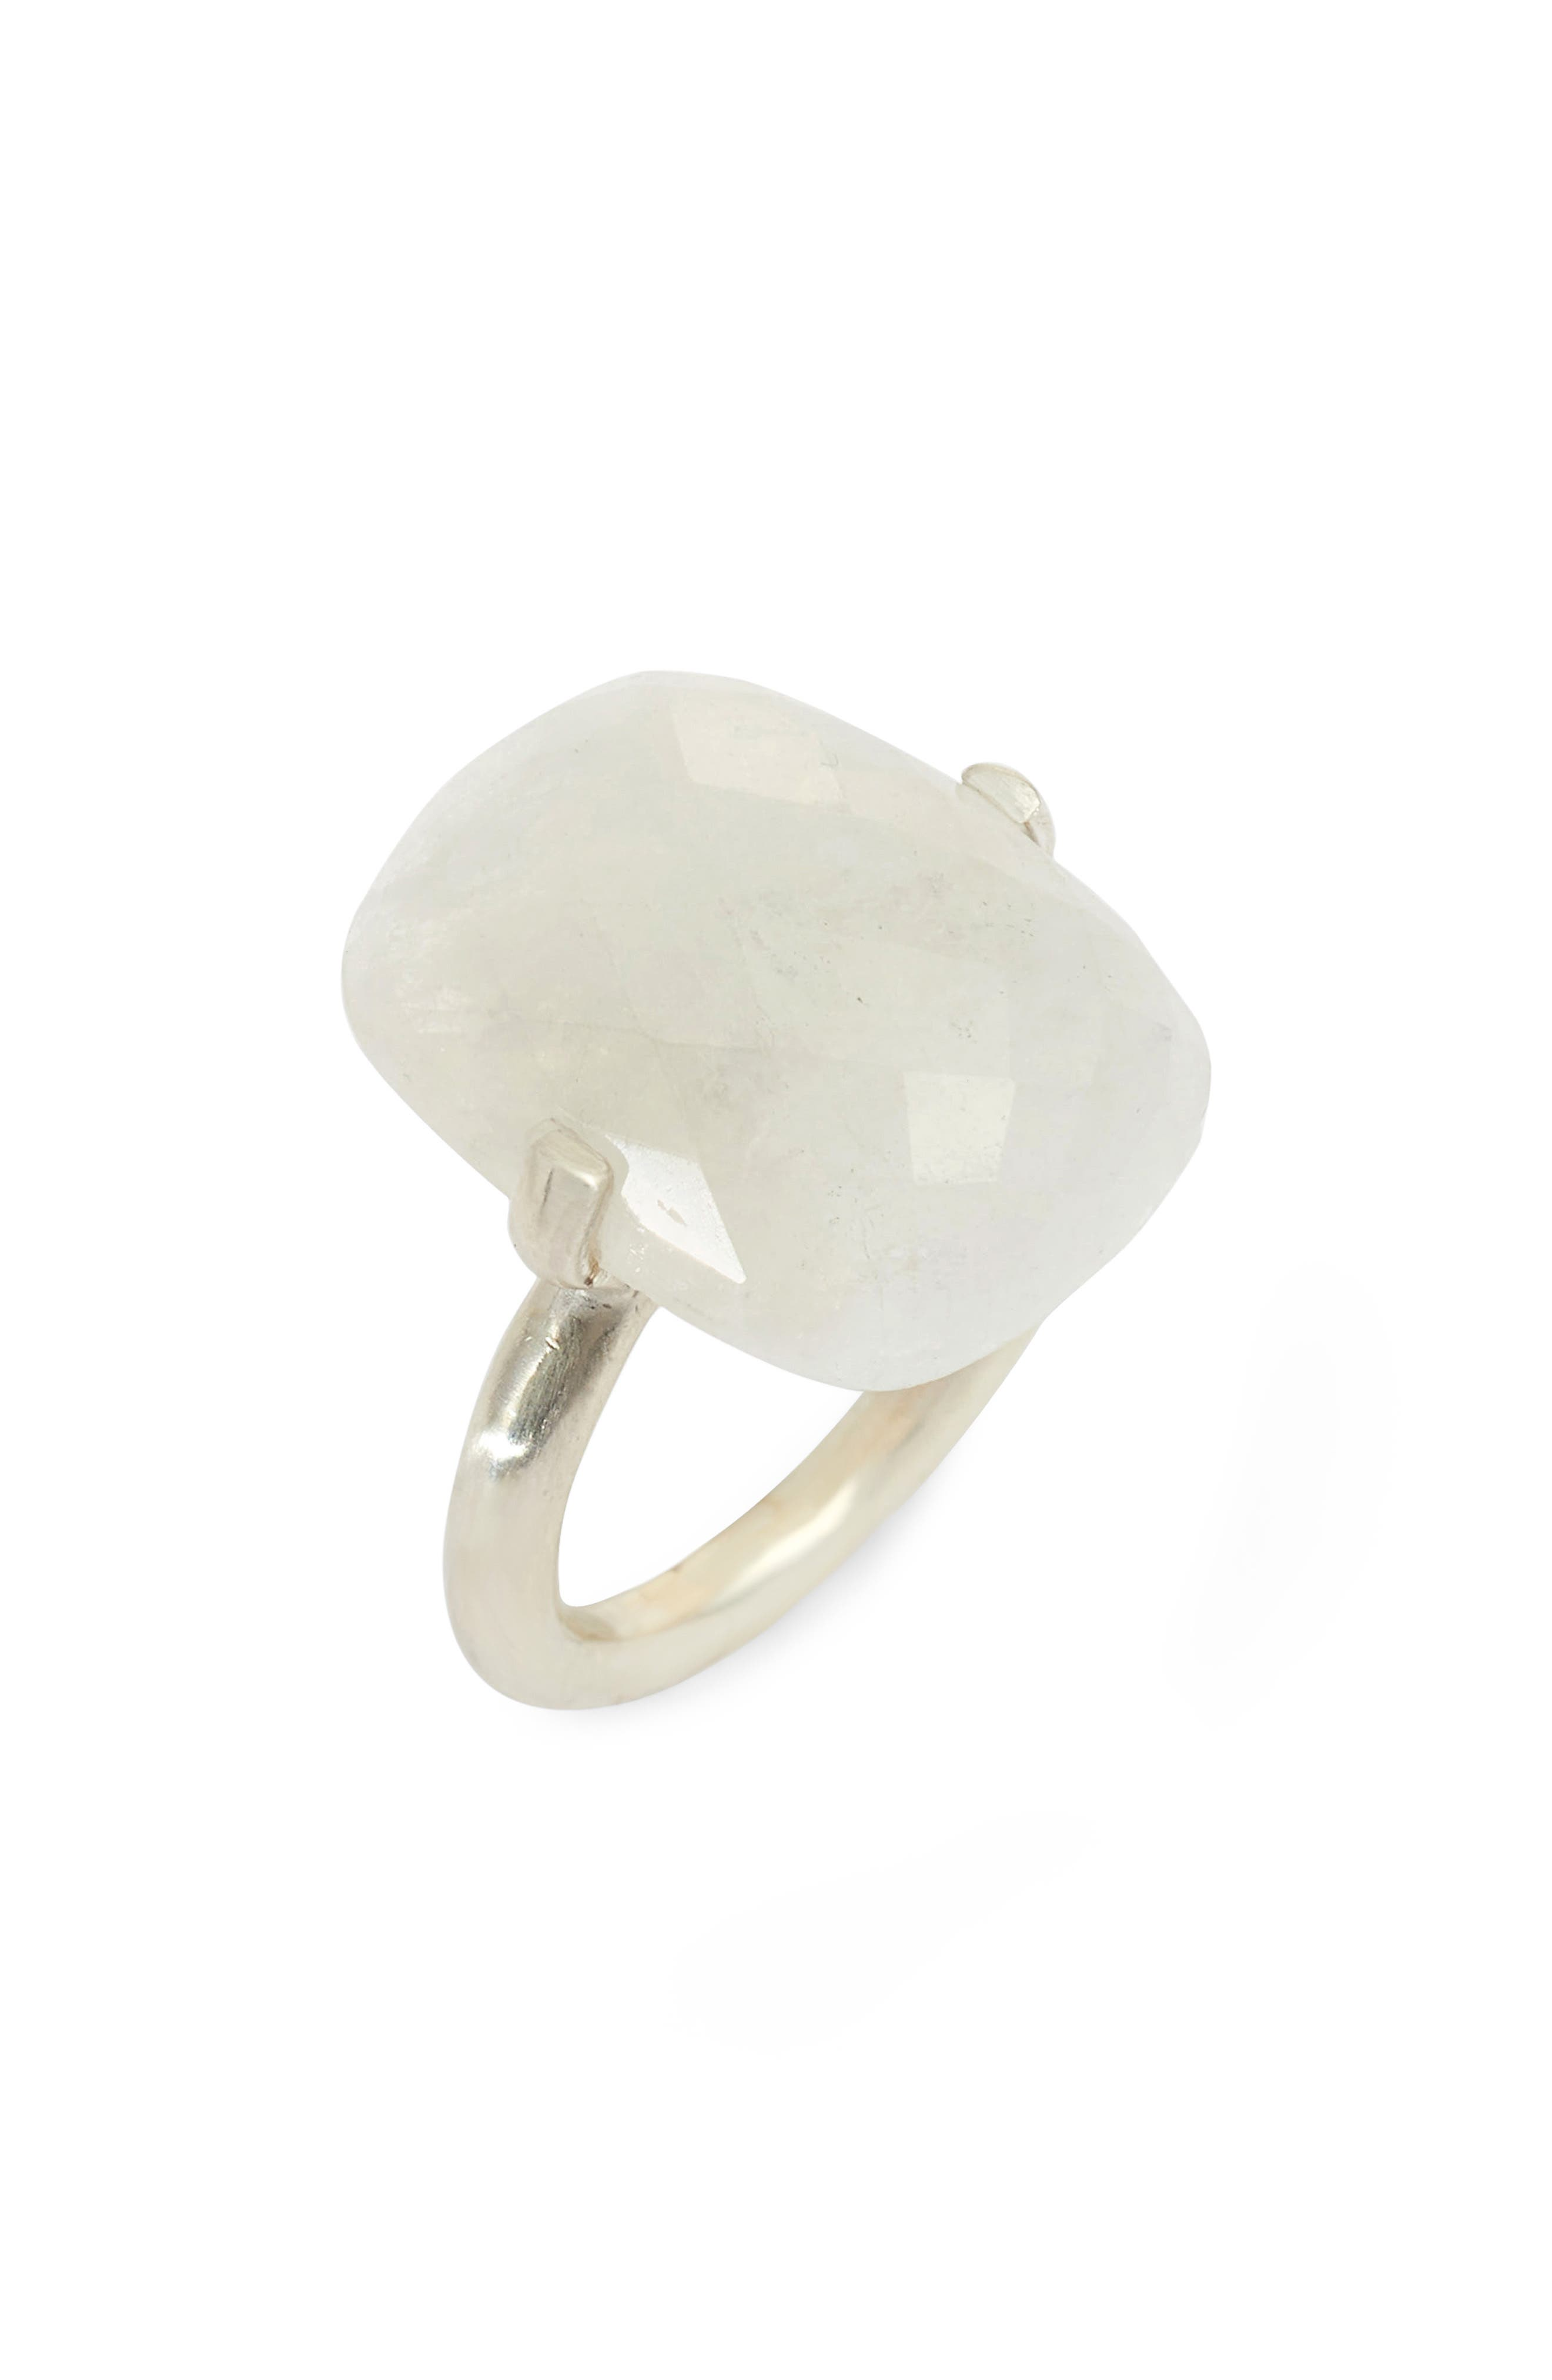 Faceted Stone Ring,                             Main thumbnail 1, color,                             100